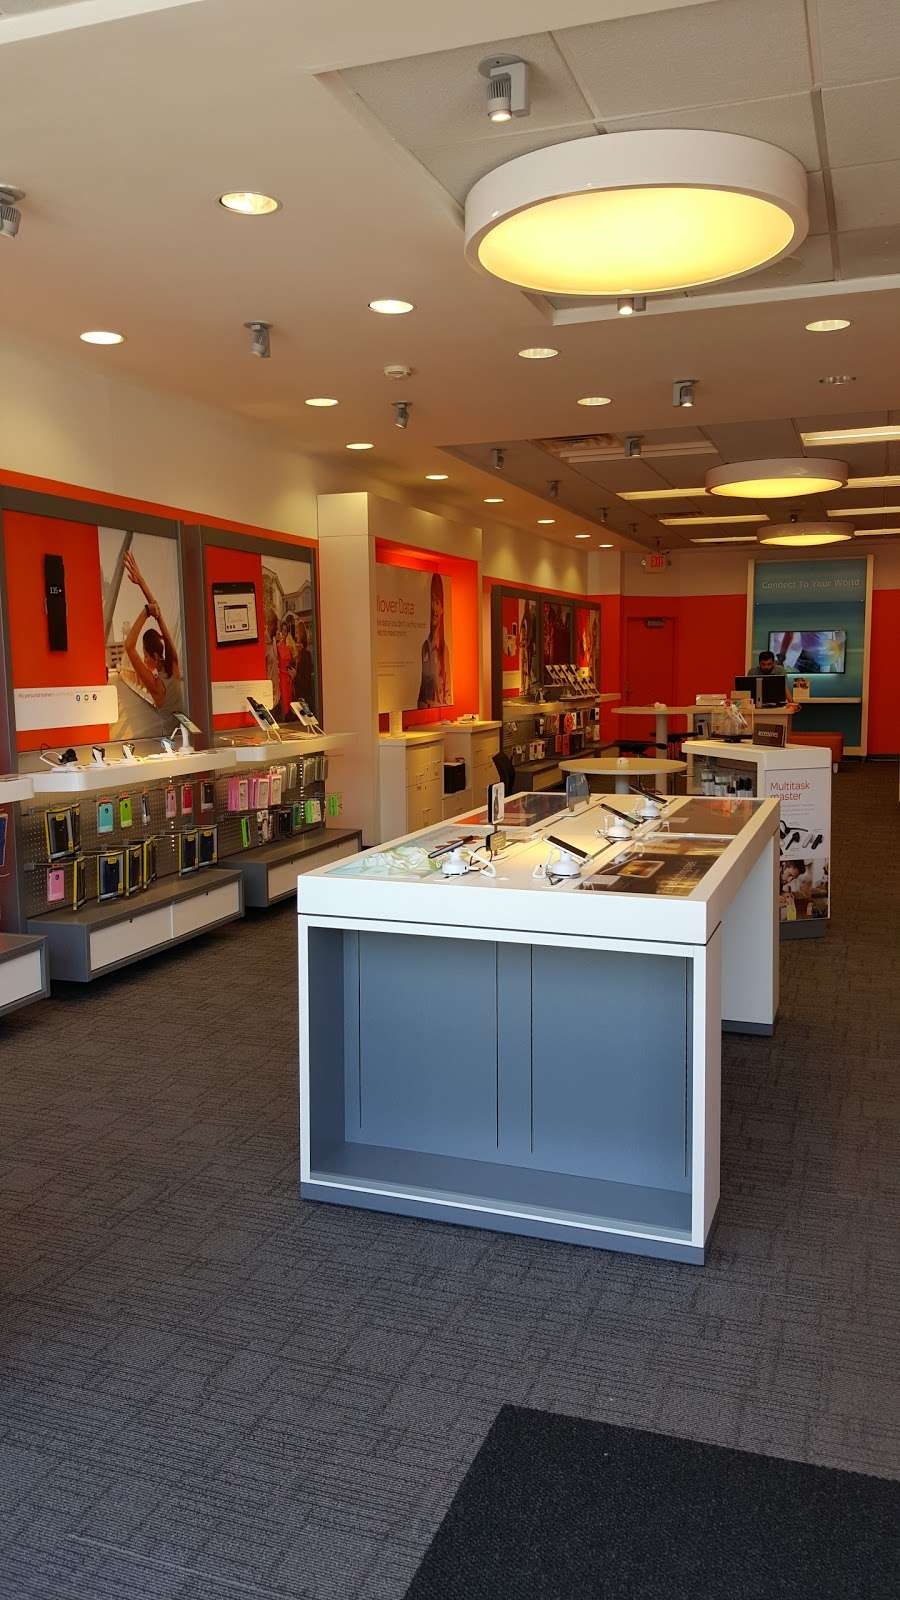 AT&T Store - electronics store  | Photo 4 of 9 | Address: 843 Bronx River Rd, Yonkers, NY 10708, USA | Phone: (914) 226-8240